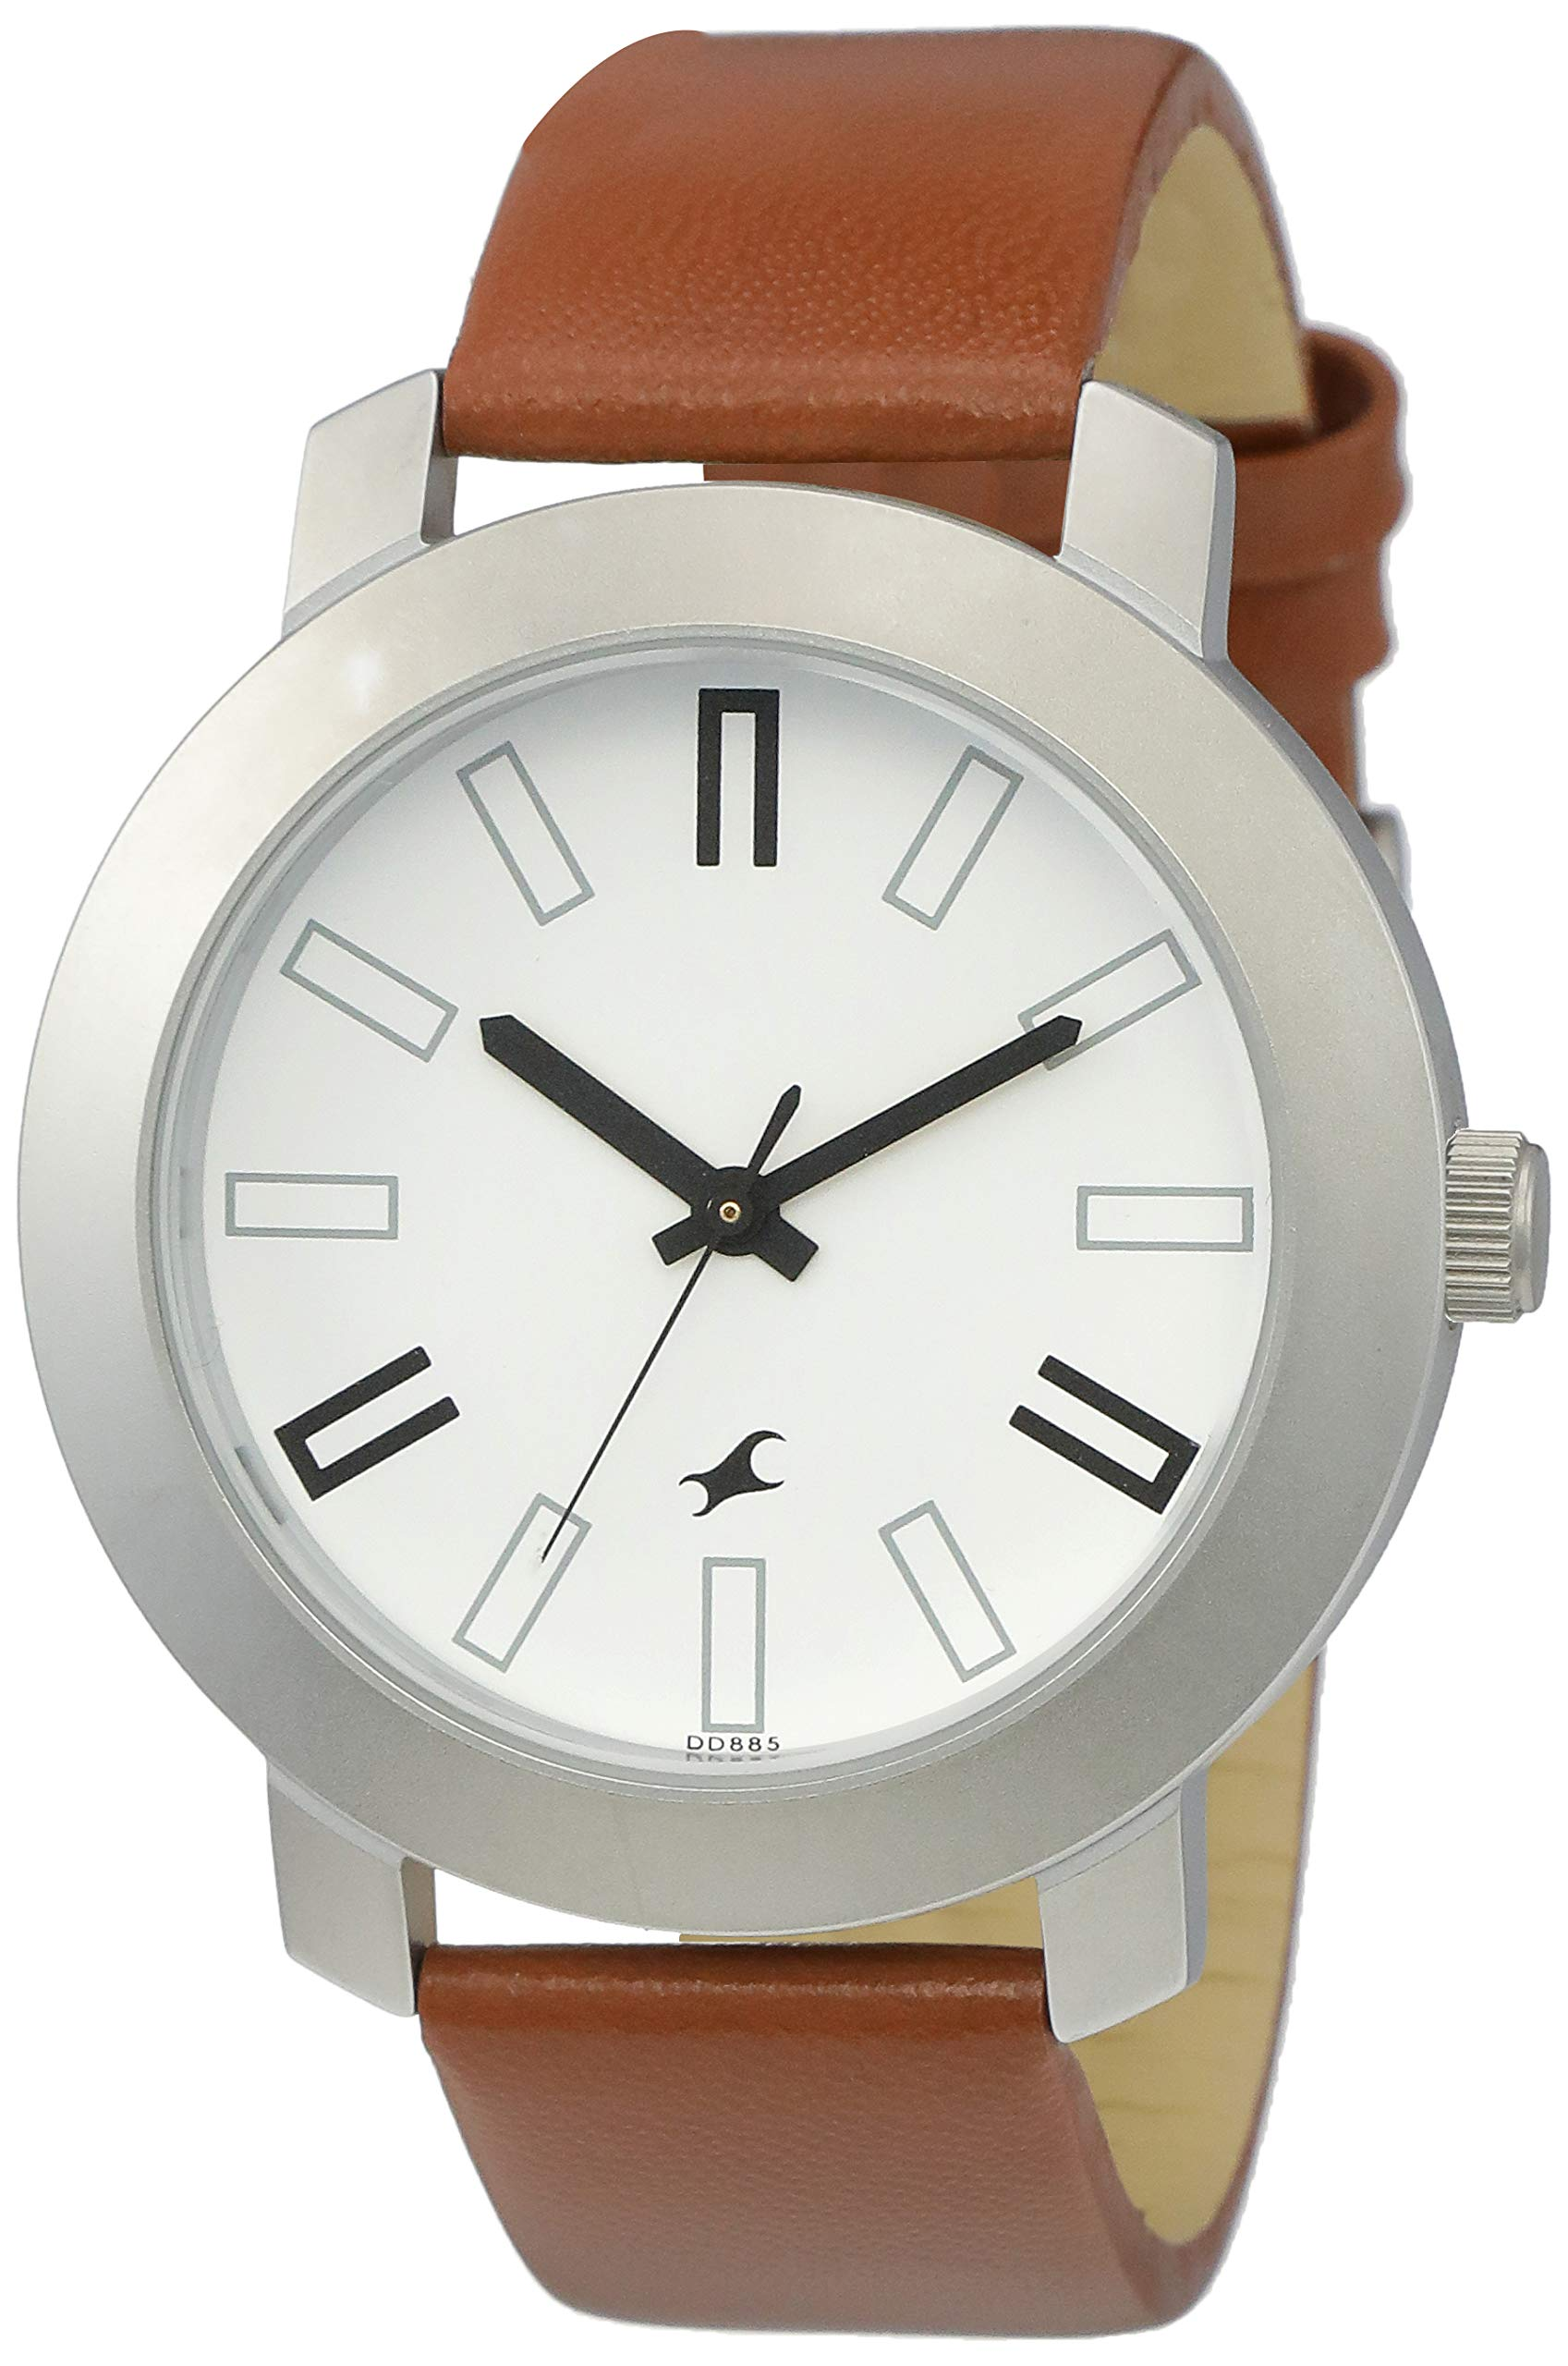 Fastrack -Test Watch product image